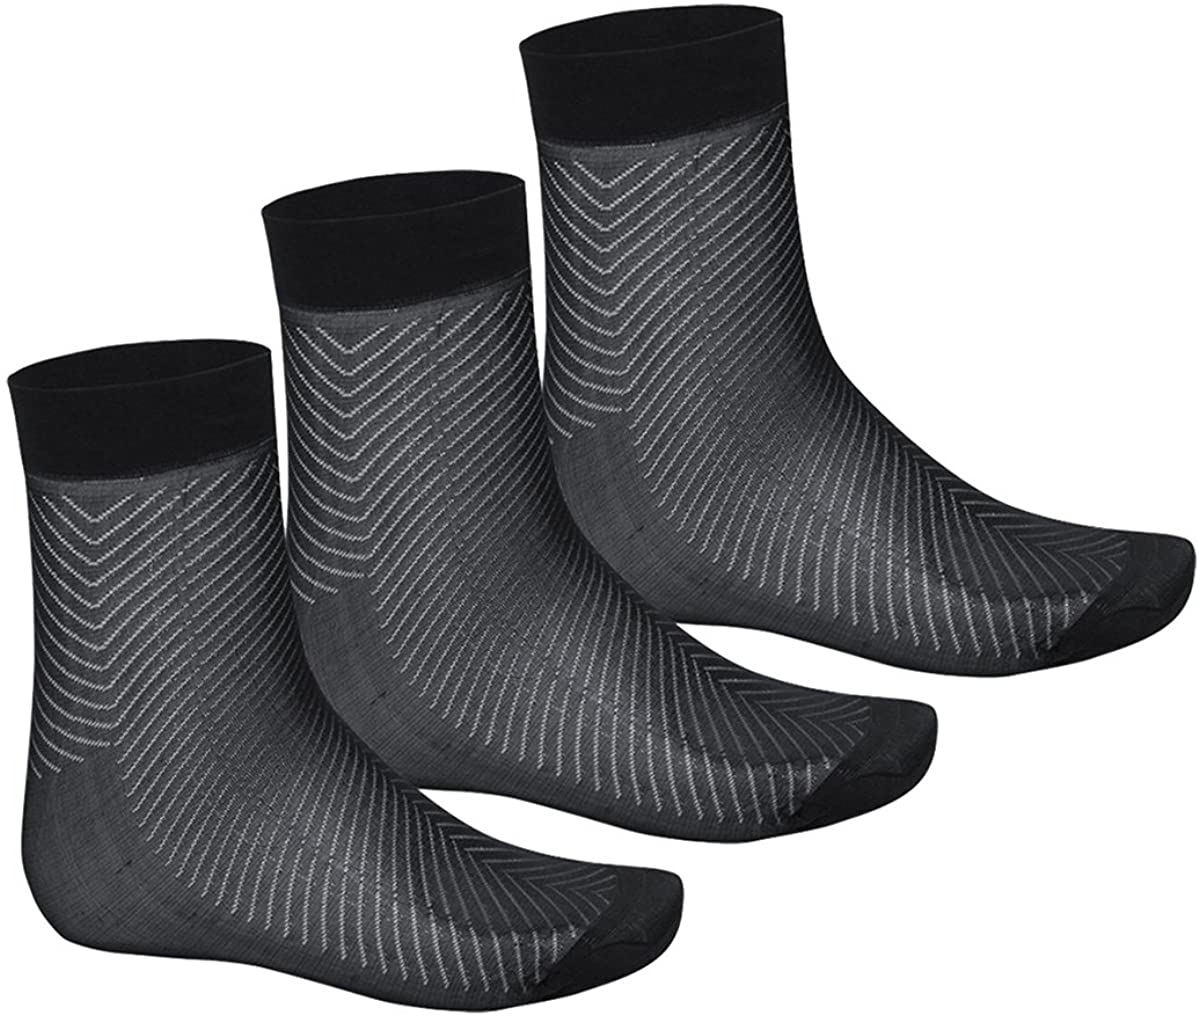 ACSUSS Men's Casual Thin Breathable Pure Soft Silk Mid-Calf Crew Socks (3 Pack)